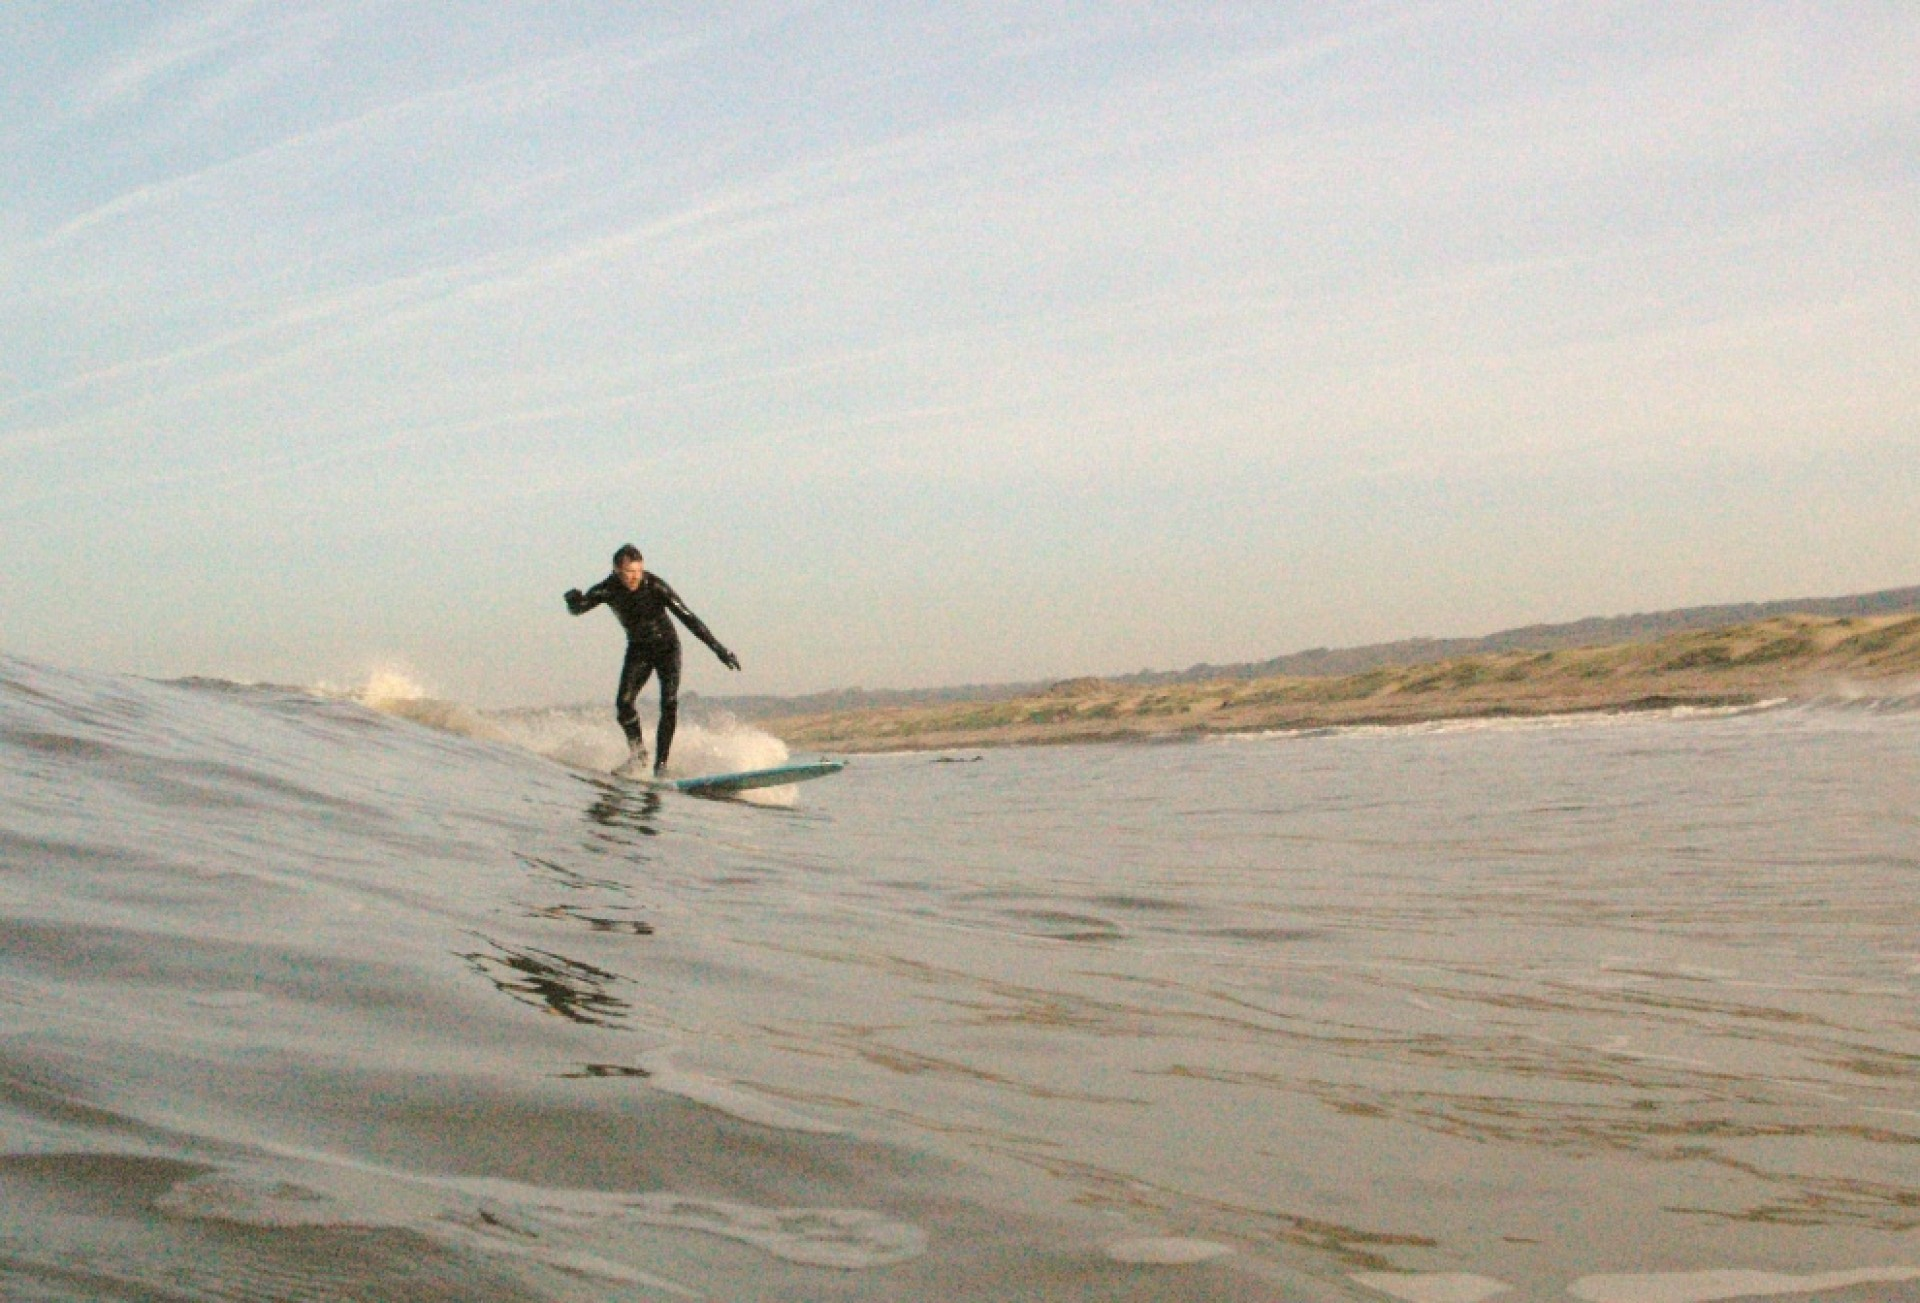 nick evzzy's photo of Porthcawl - Coney Beach